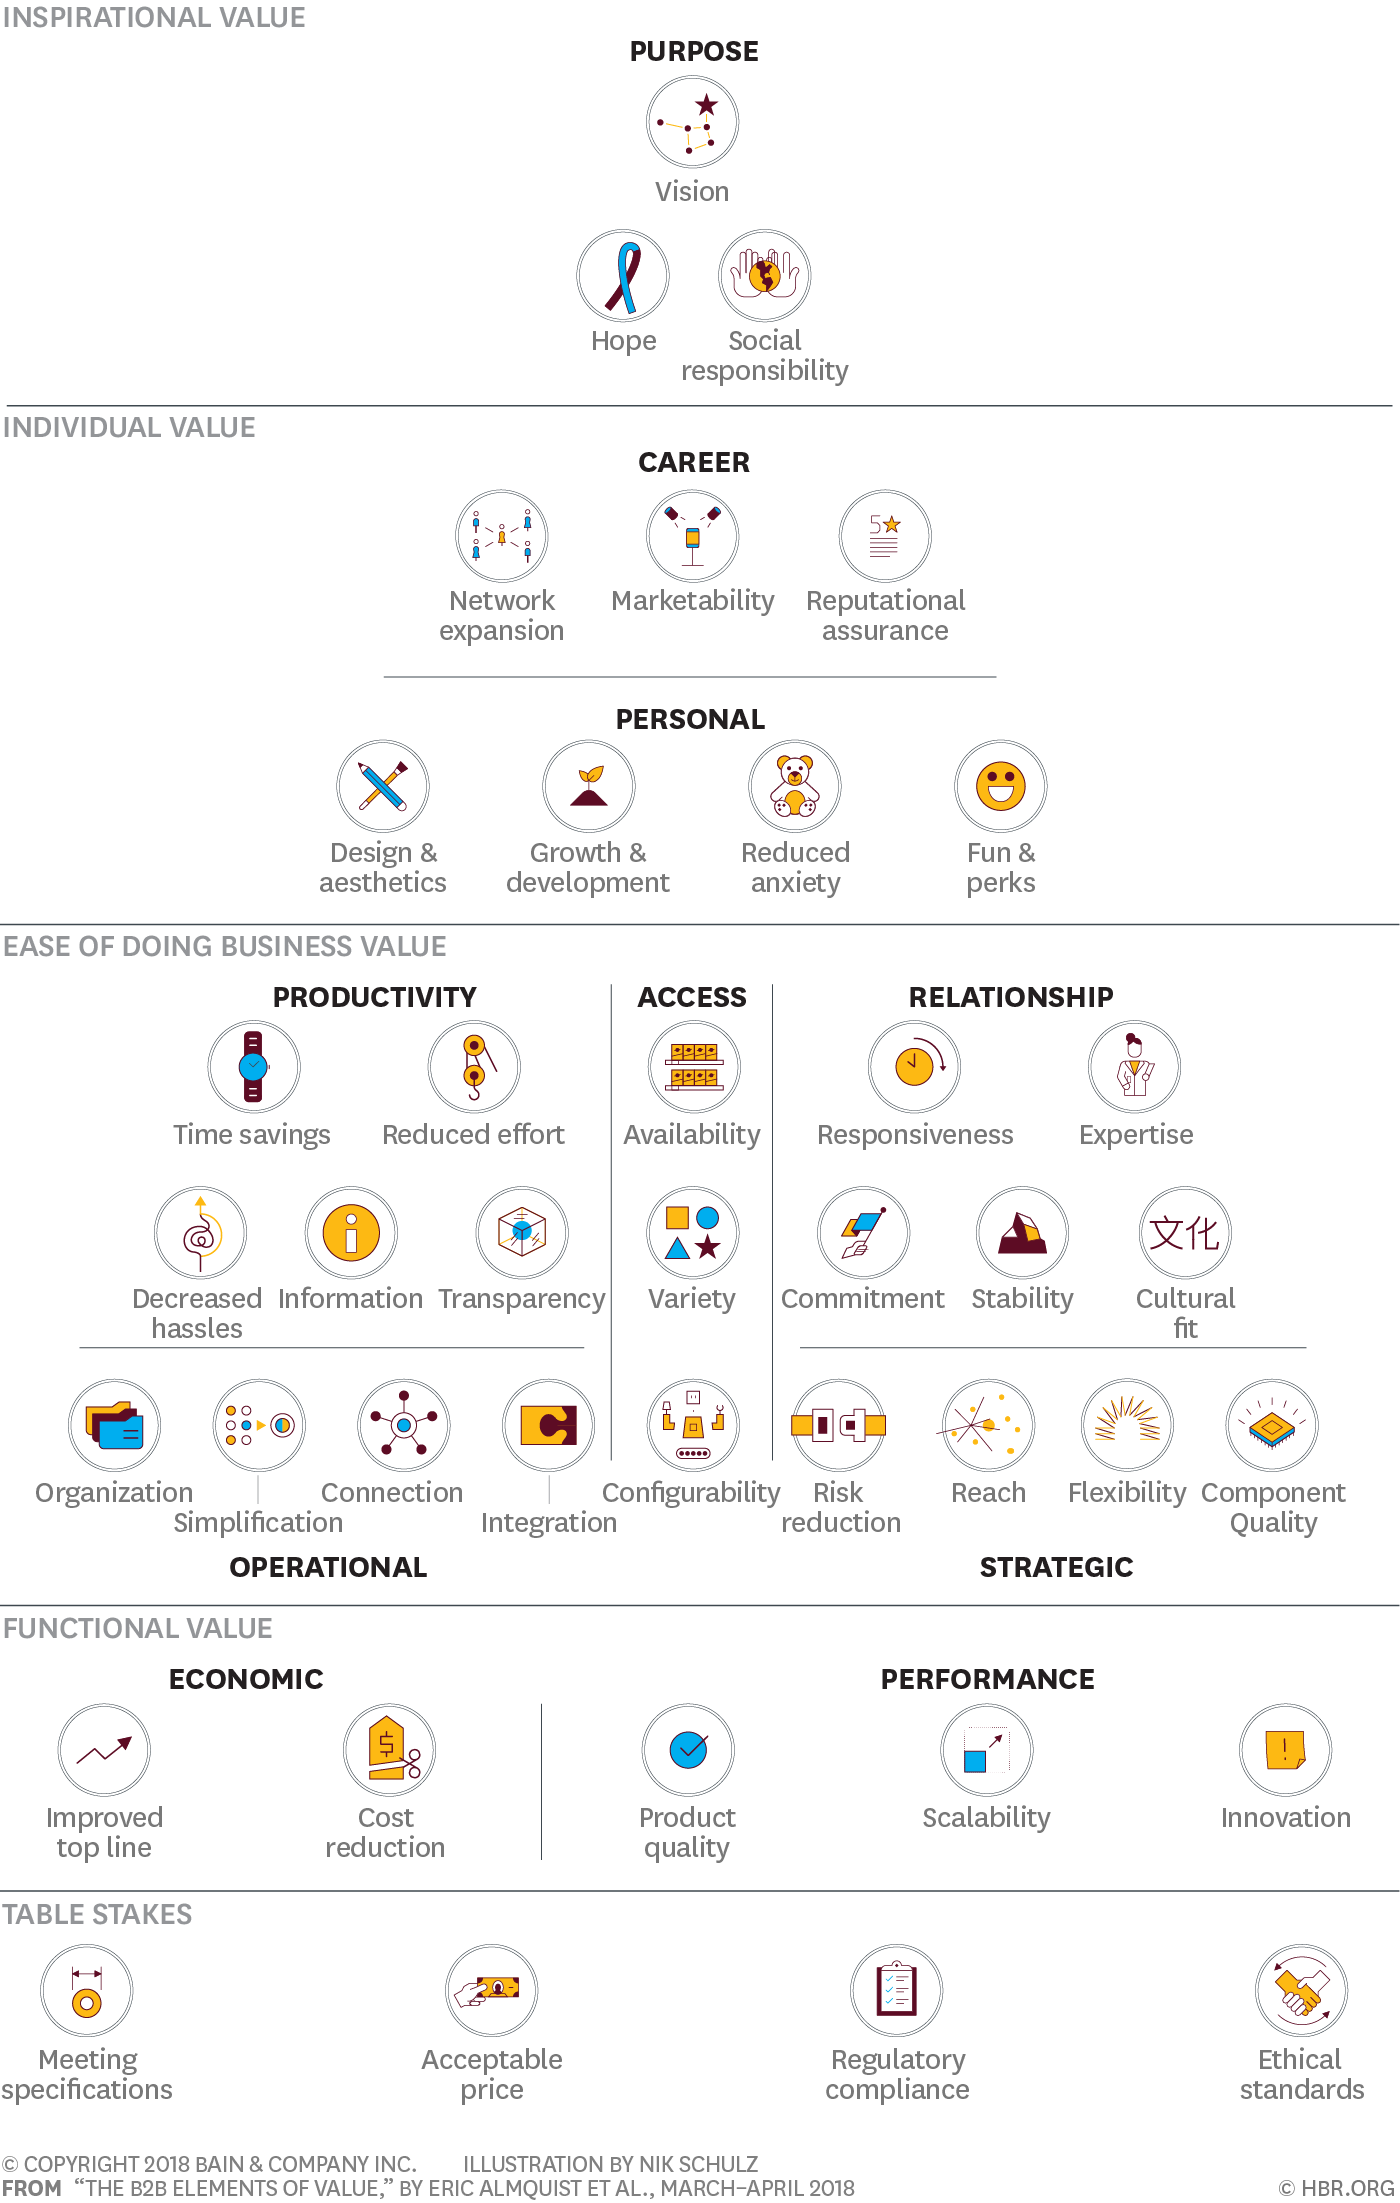 The B2B Elements of Value Pyramid. Bain has organized the 40 distinct kinds of value that B2B offerings provide customers into a pyramid with five levels.